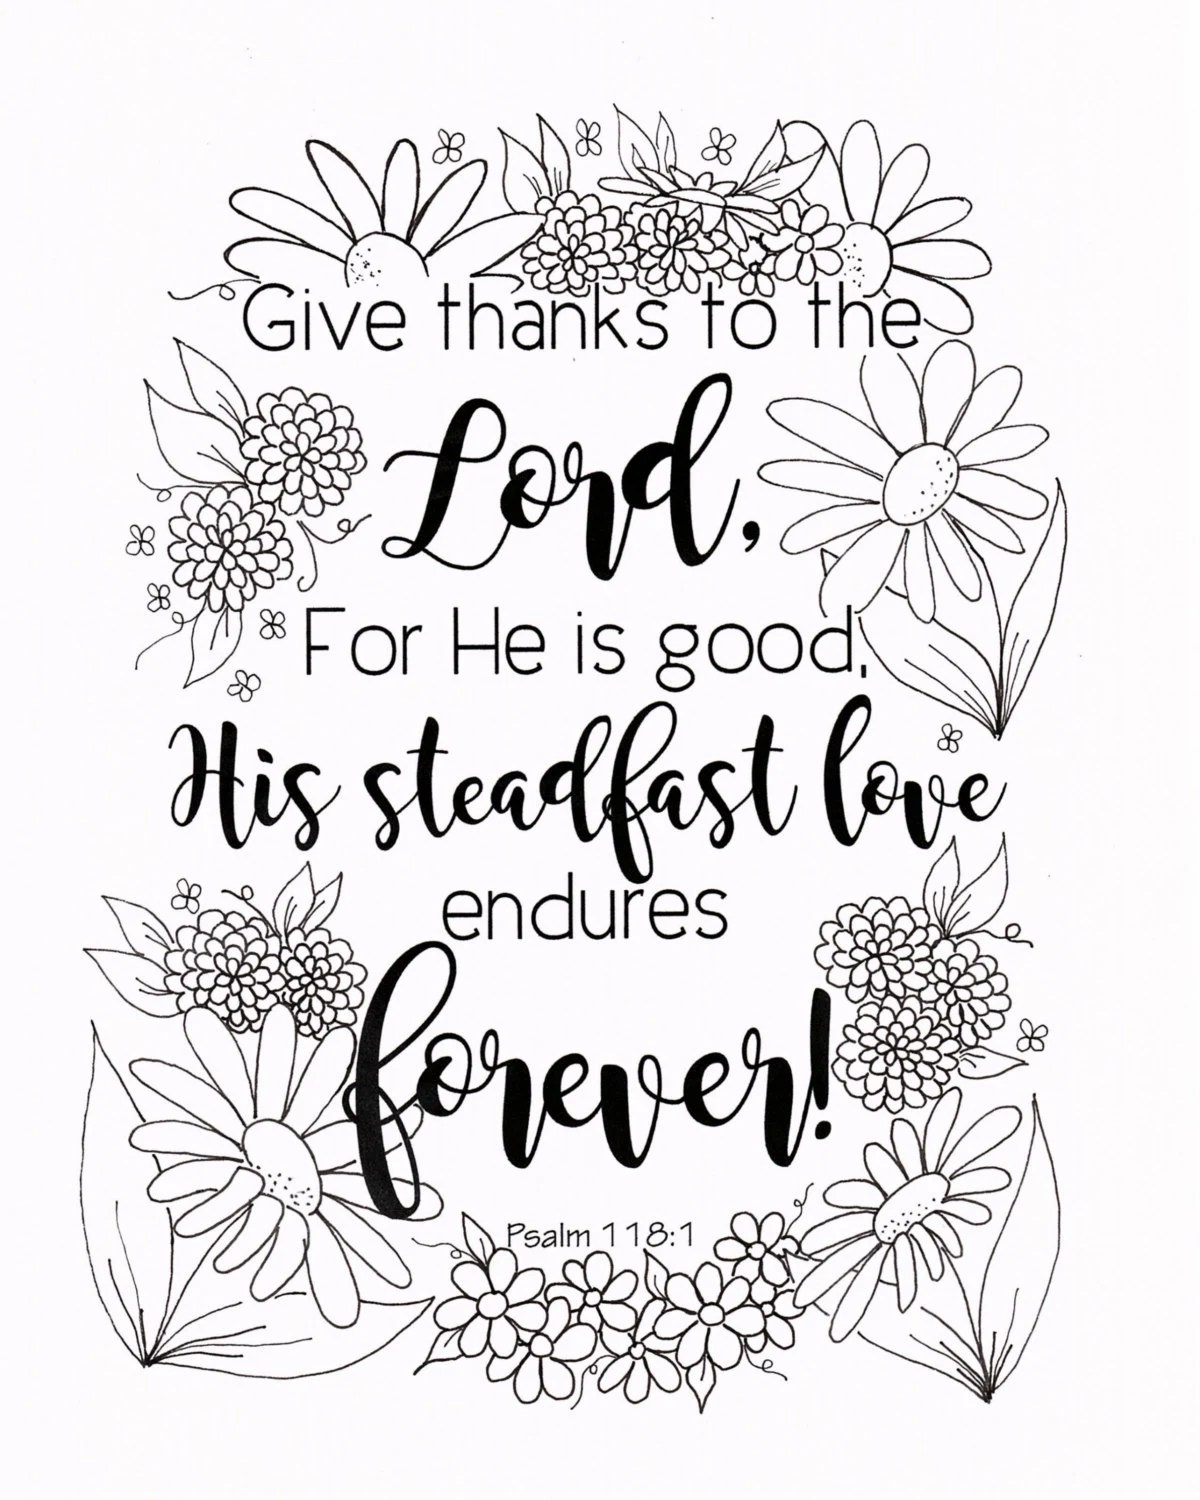 Give Thanks Coloring Page, Psalm 118:1 Bible Verse